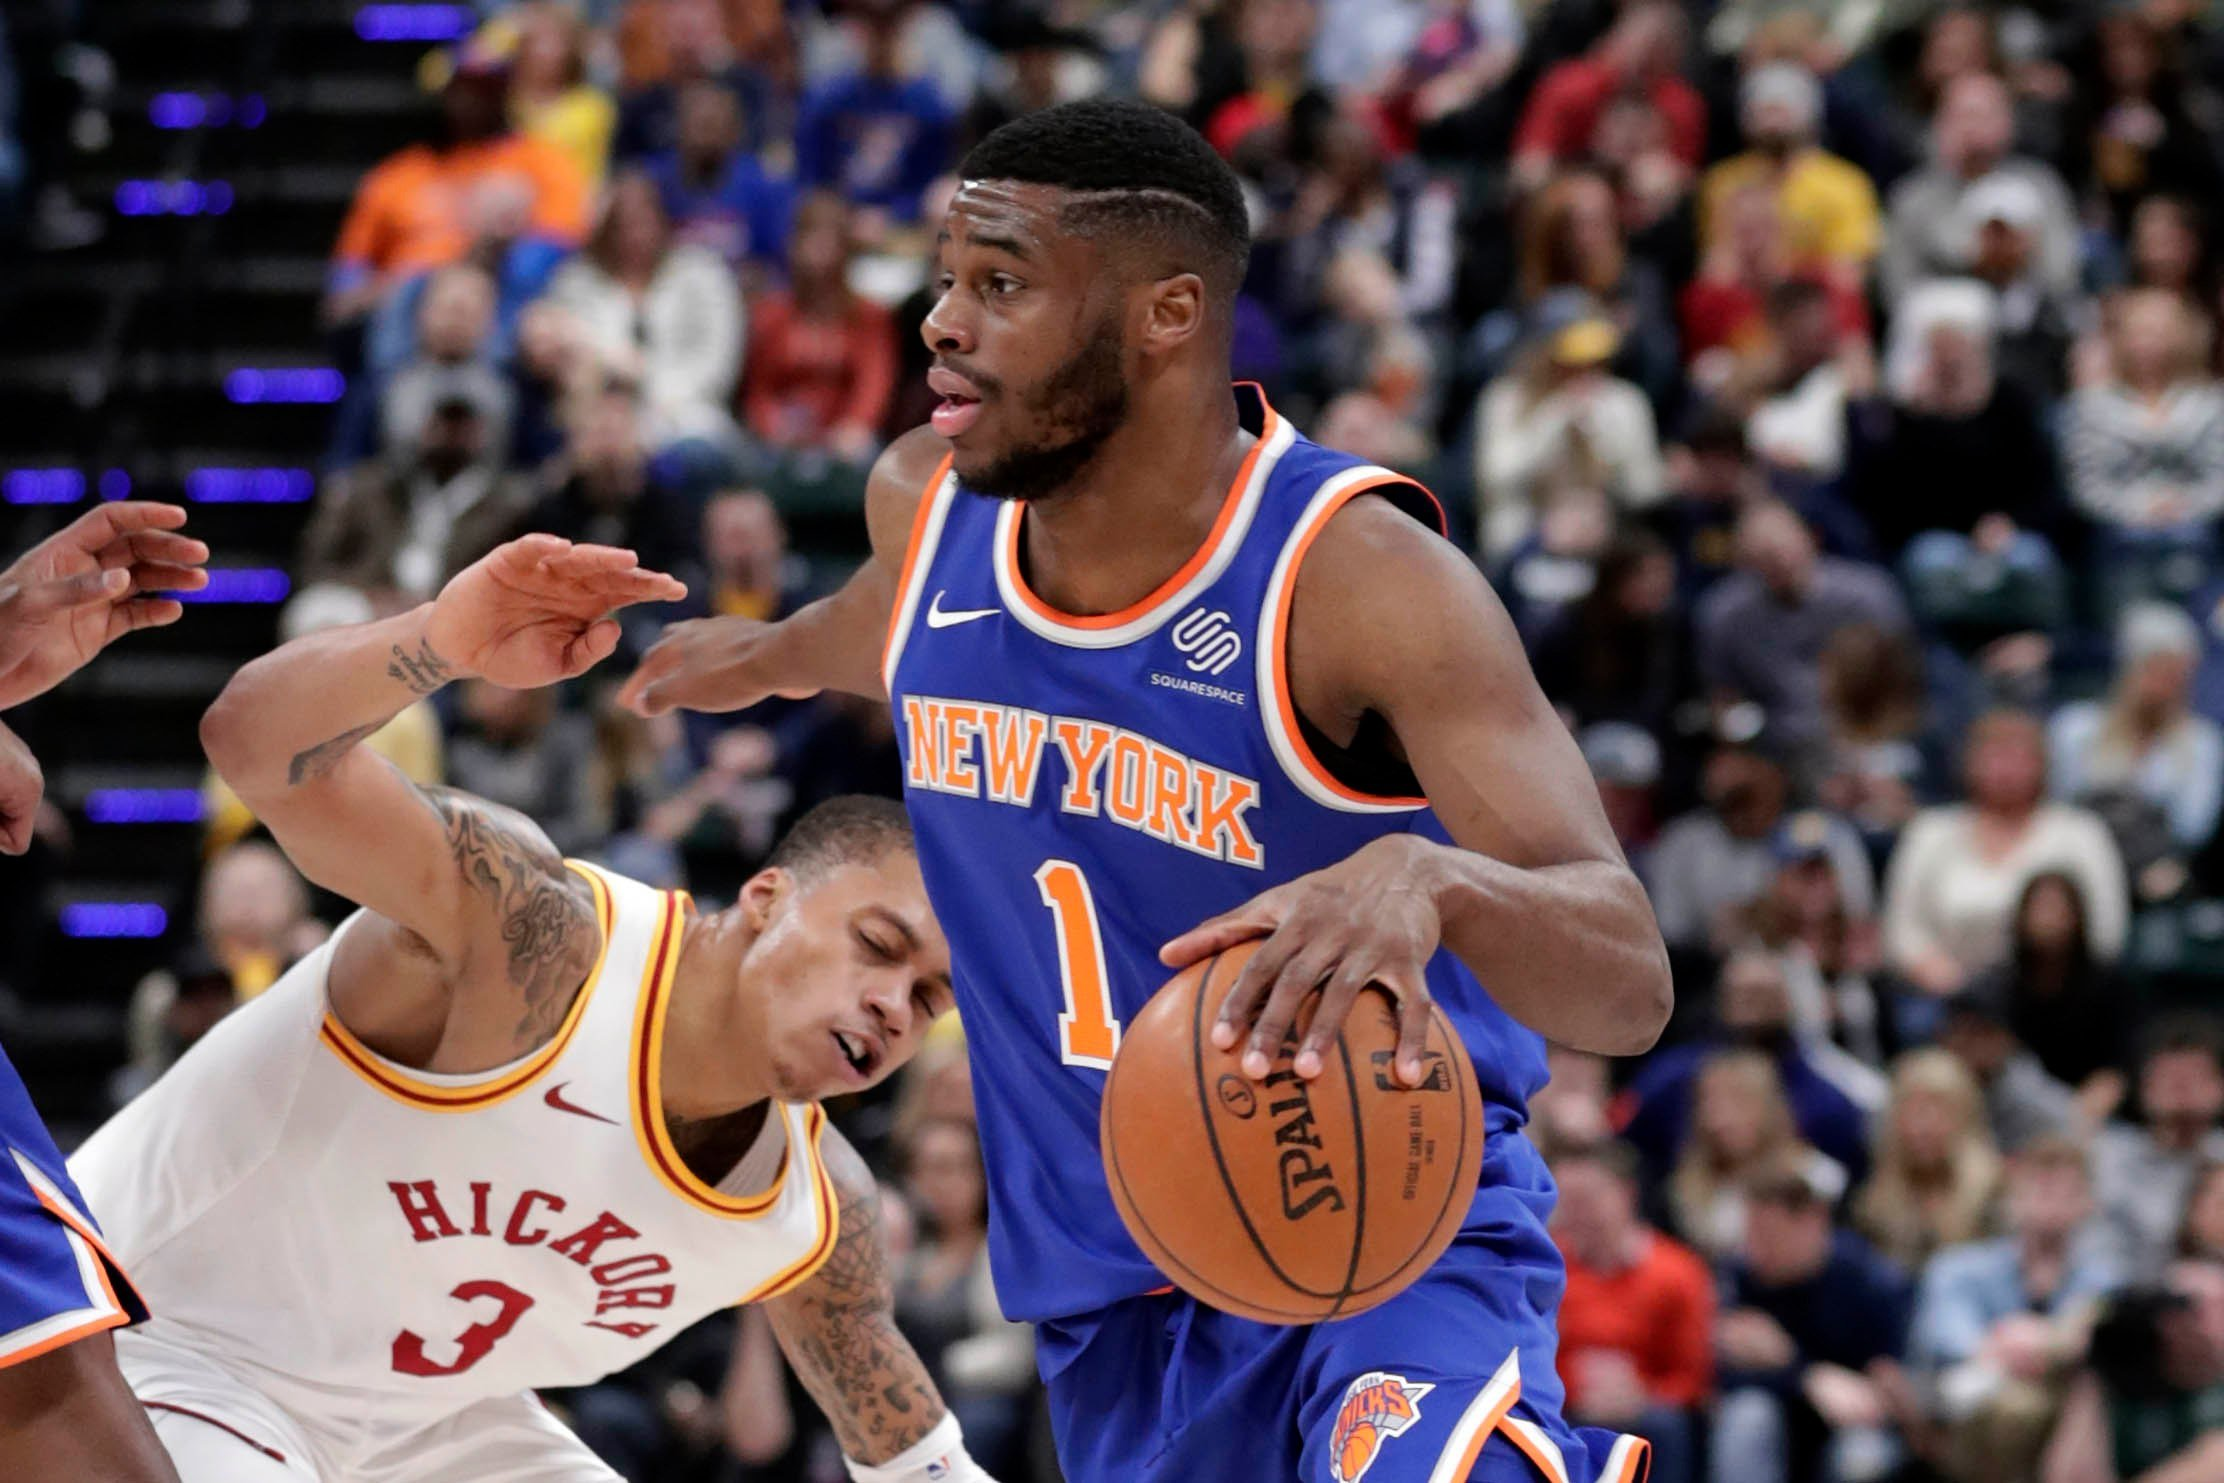 Emmanuel Mudiay impresses (and Knicks don't) in strong debut